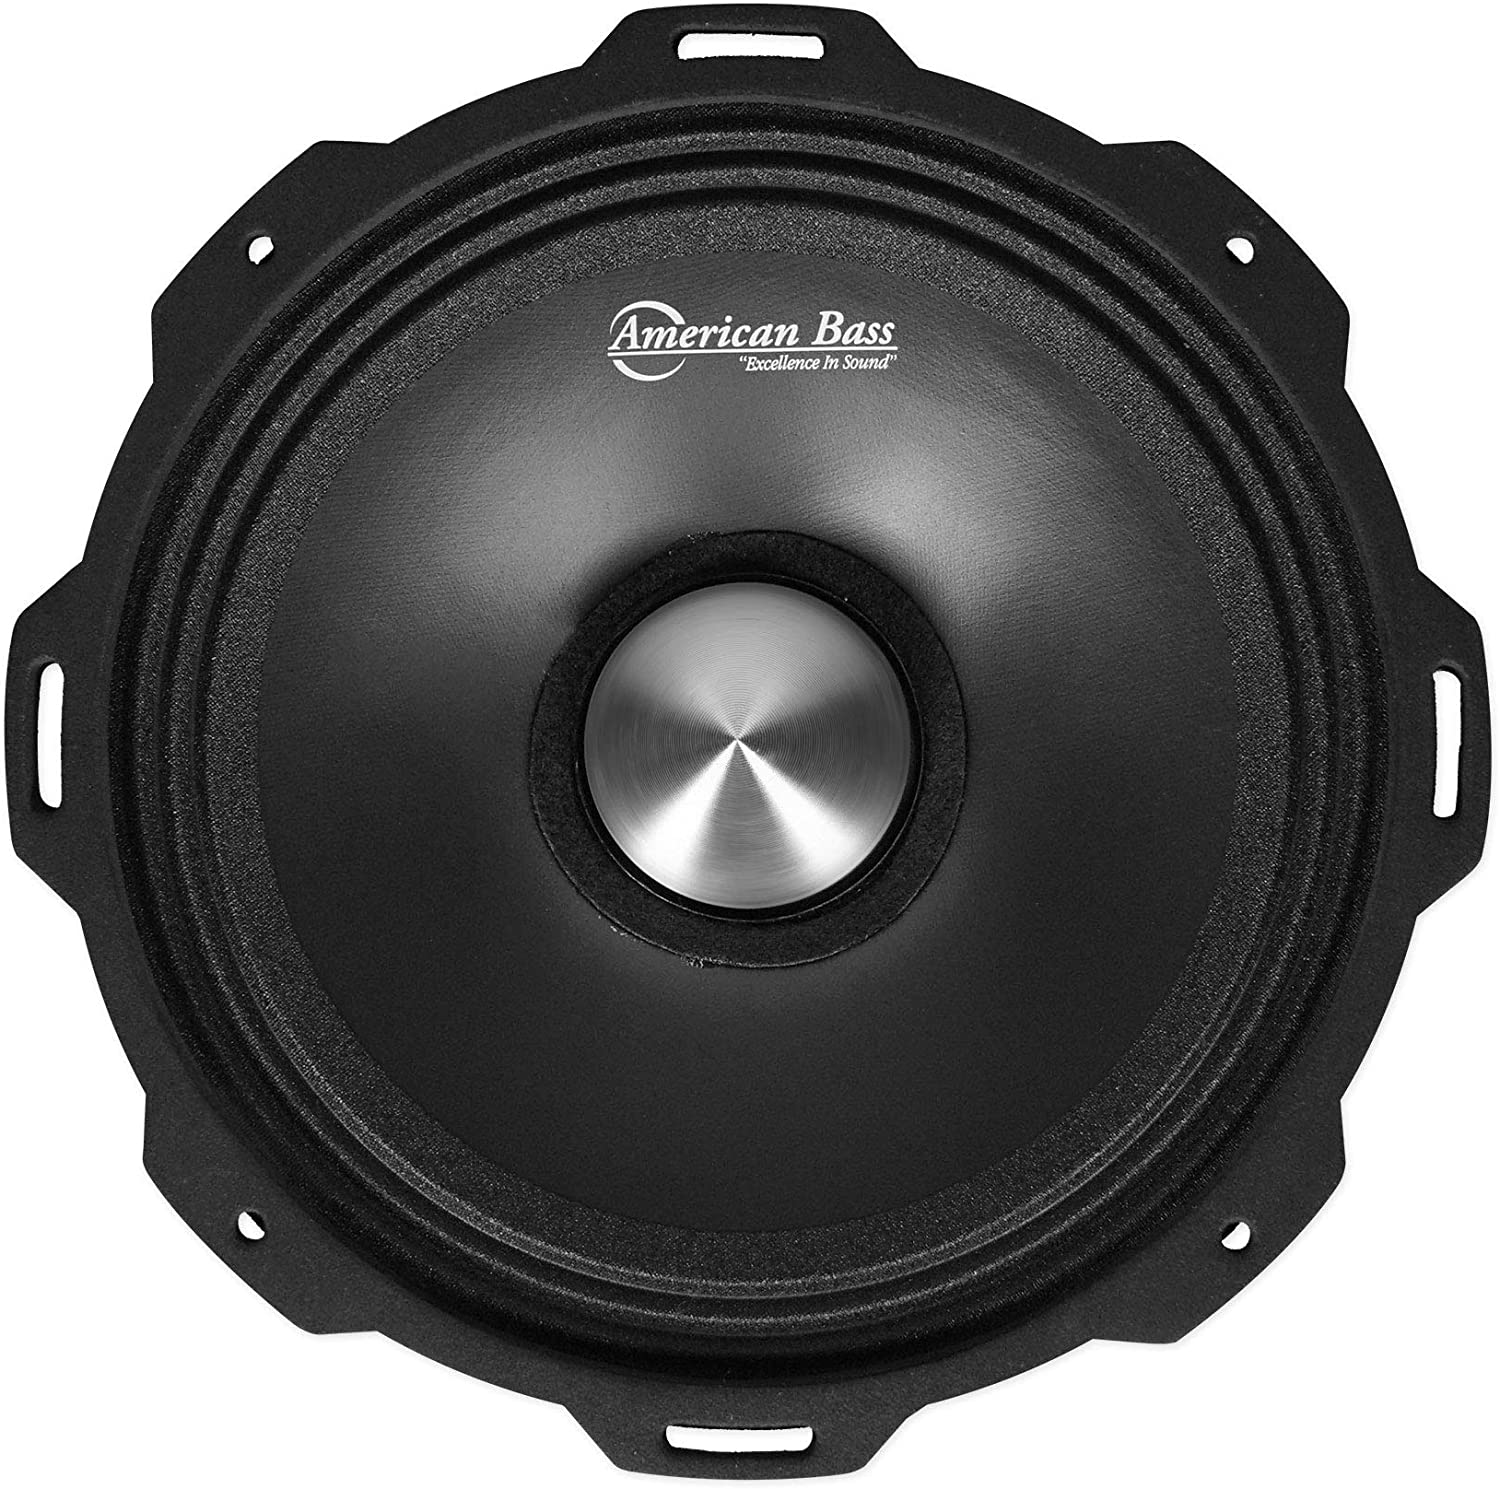 American Bass USA GF-8 L-MR Godfather Series 8-inch Midrange Speaker